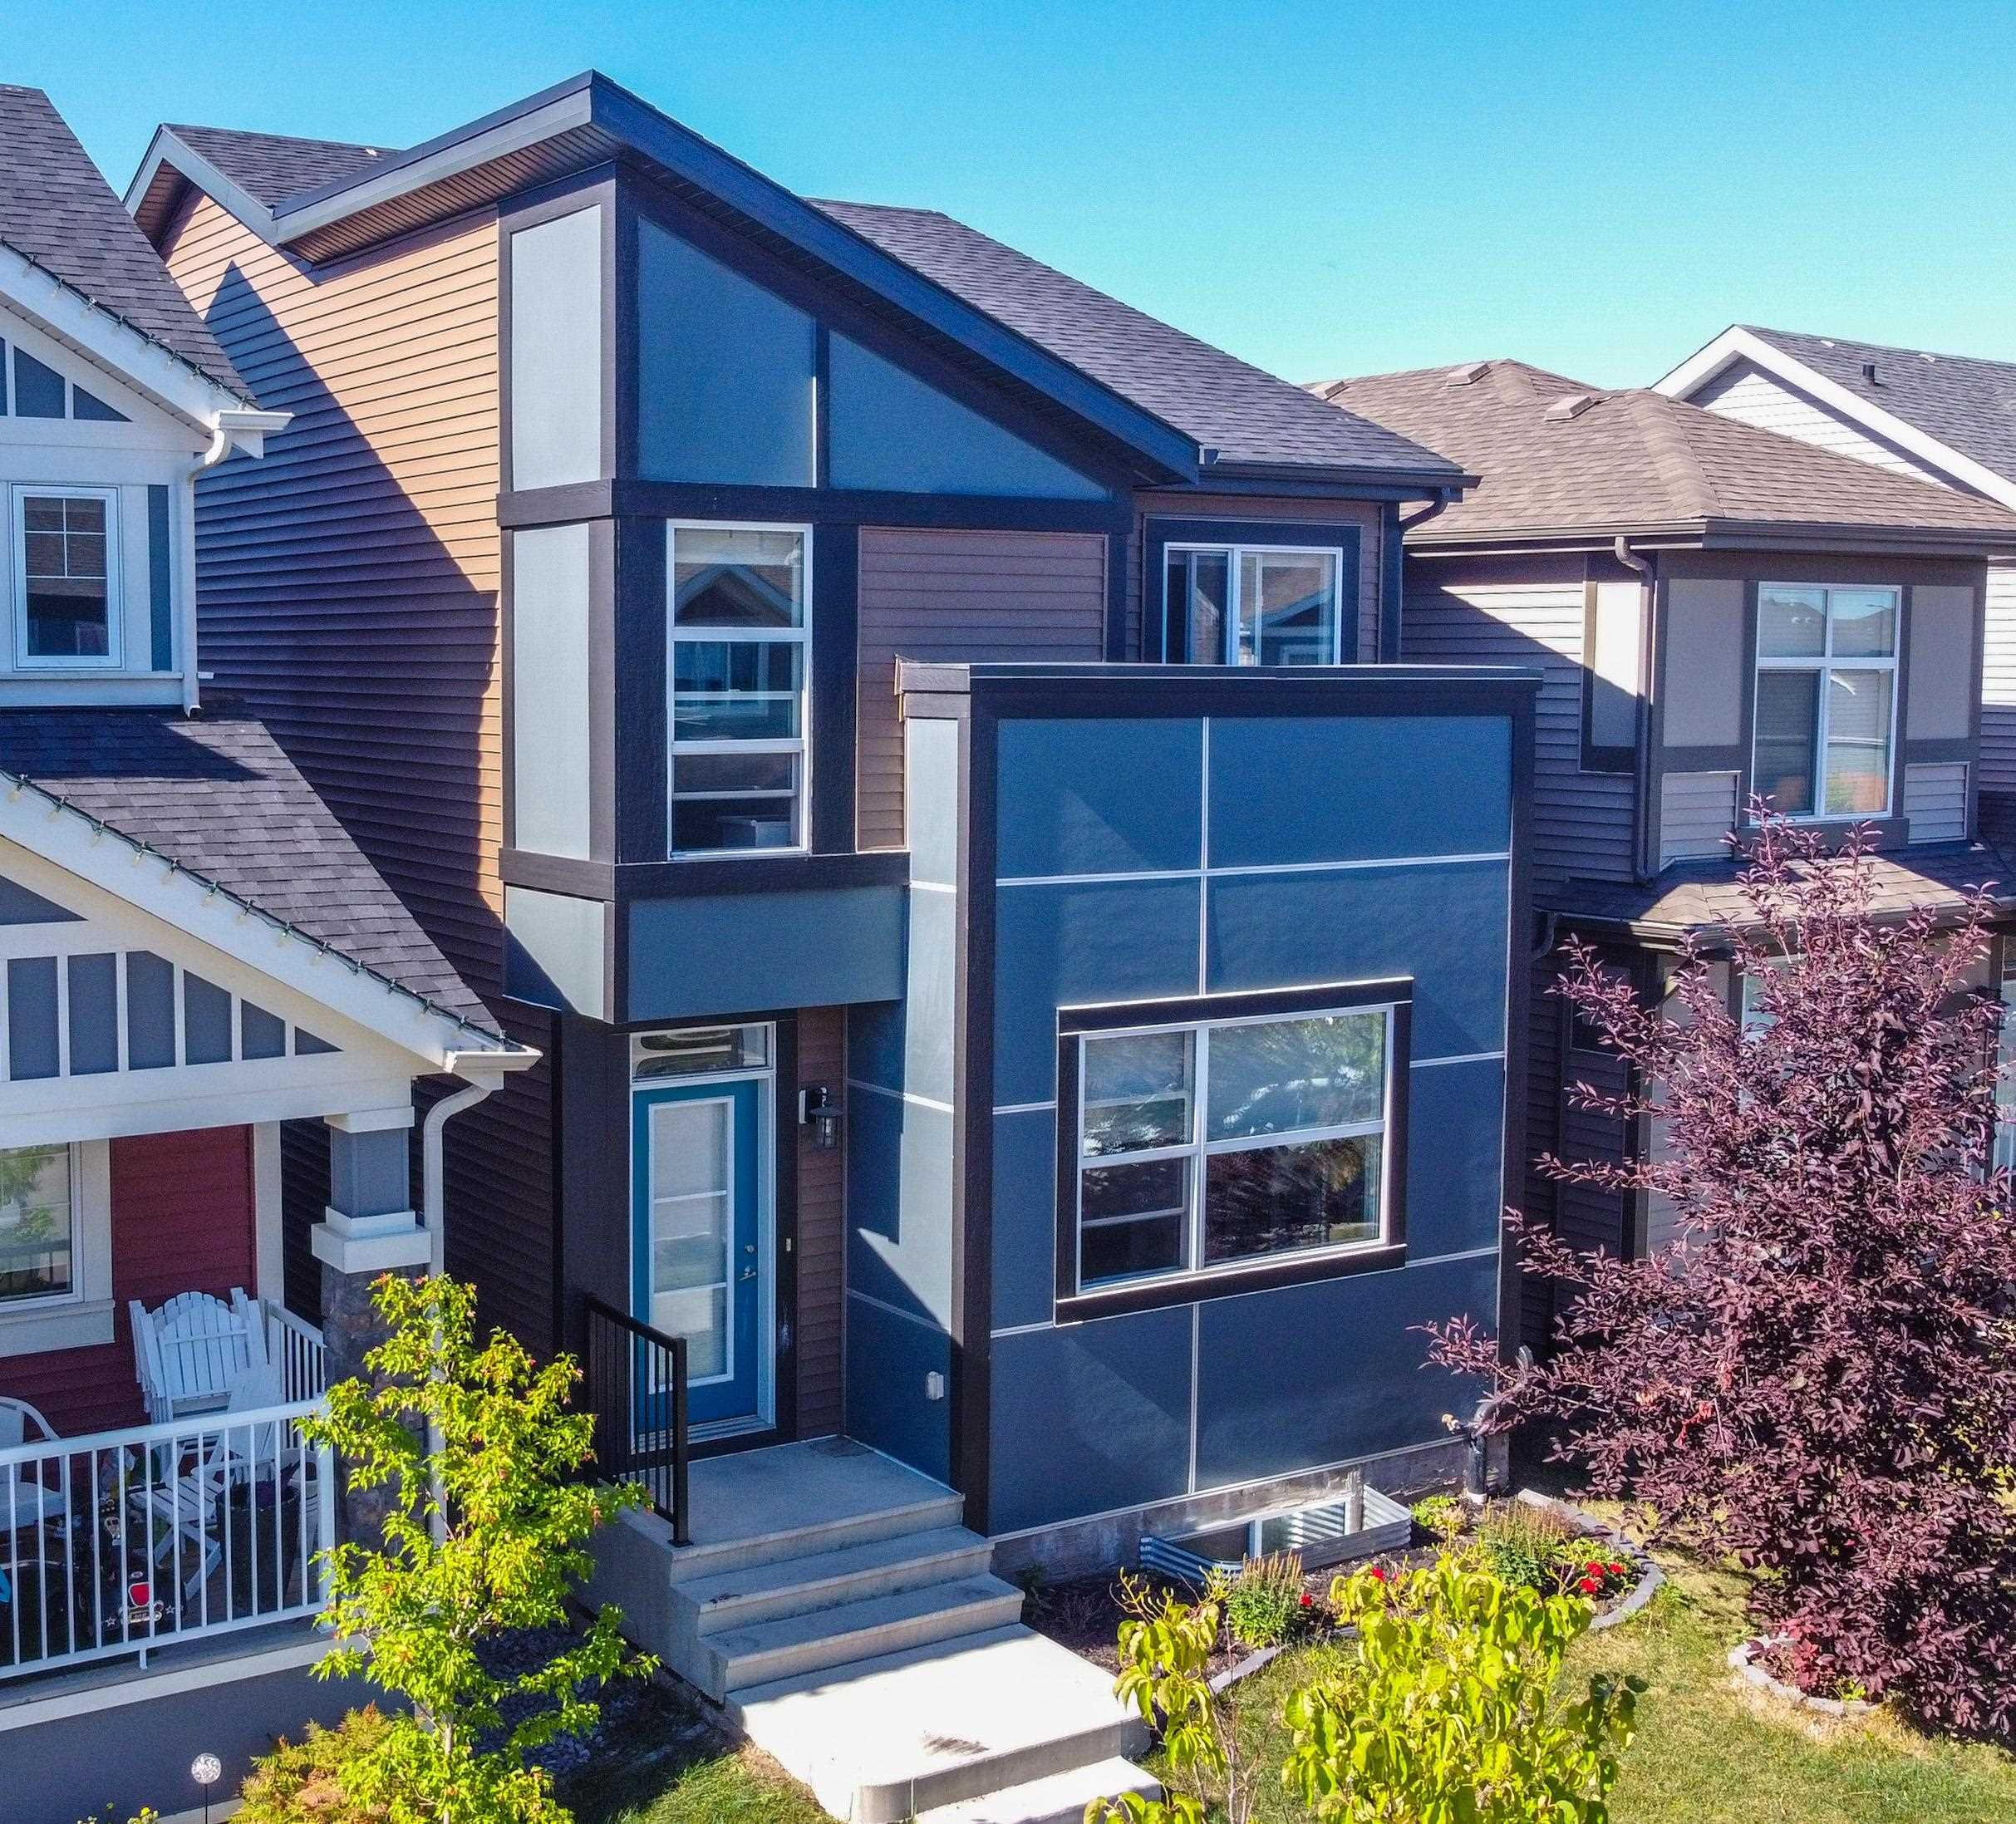 Main Photo: 4229 PROWSE Way in Edmonton: Zone 55 House for sale : MLS®# E4260790